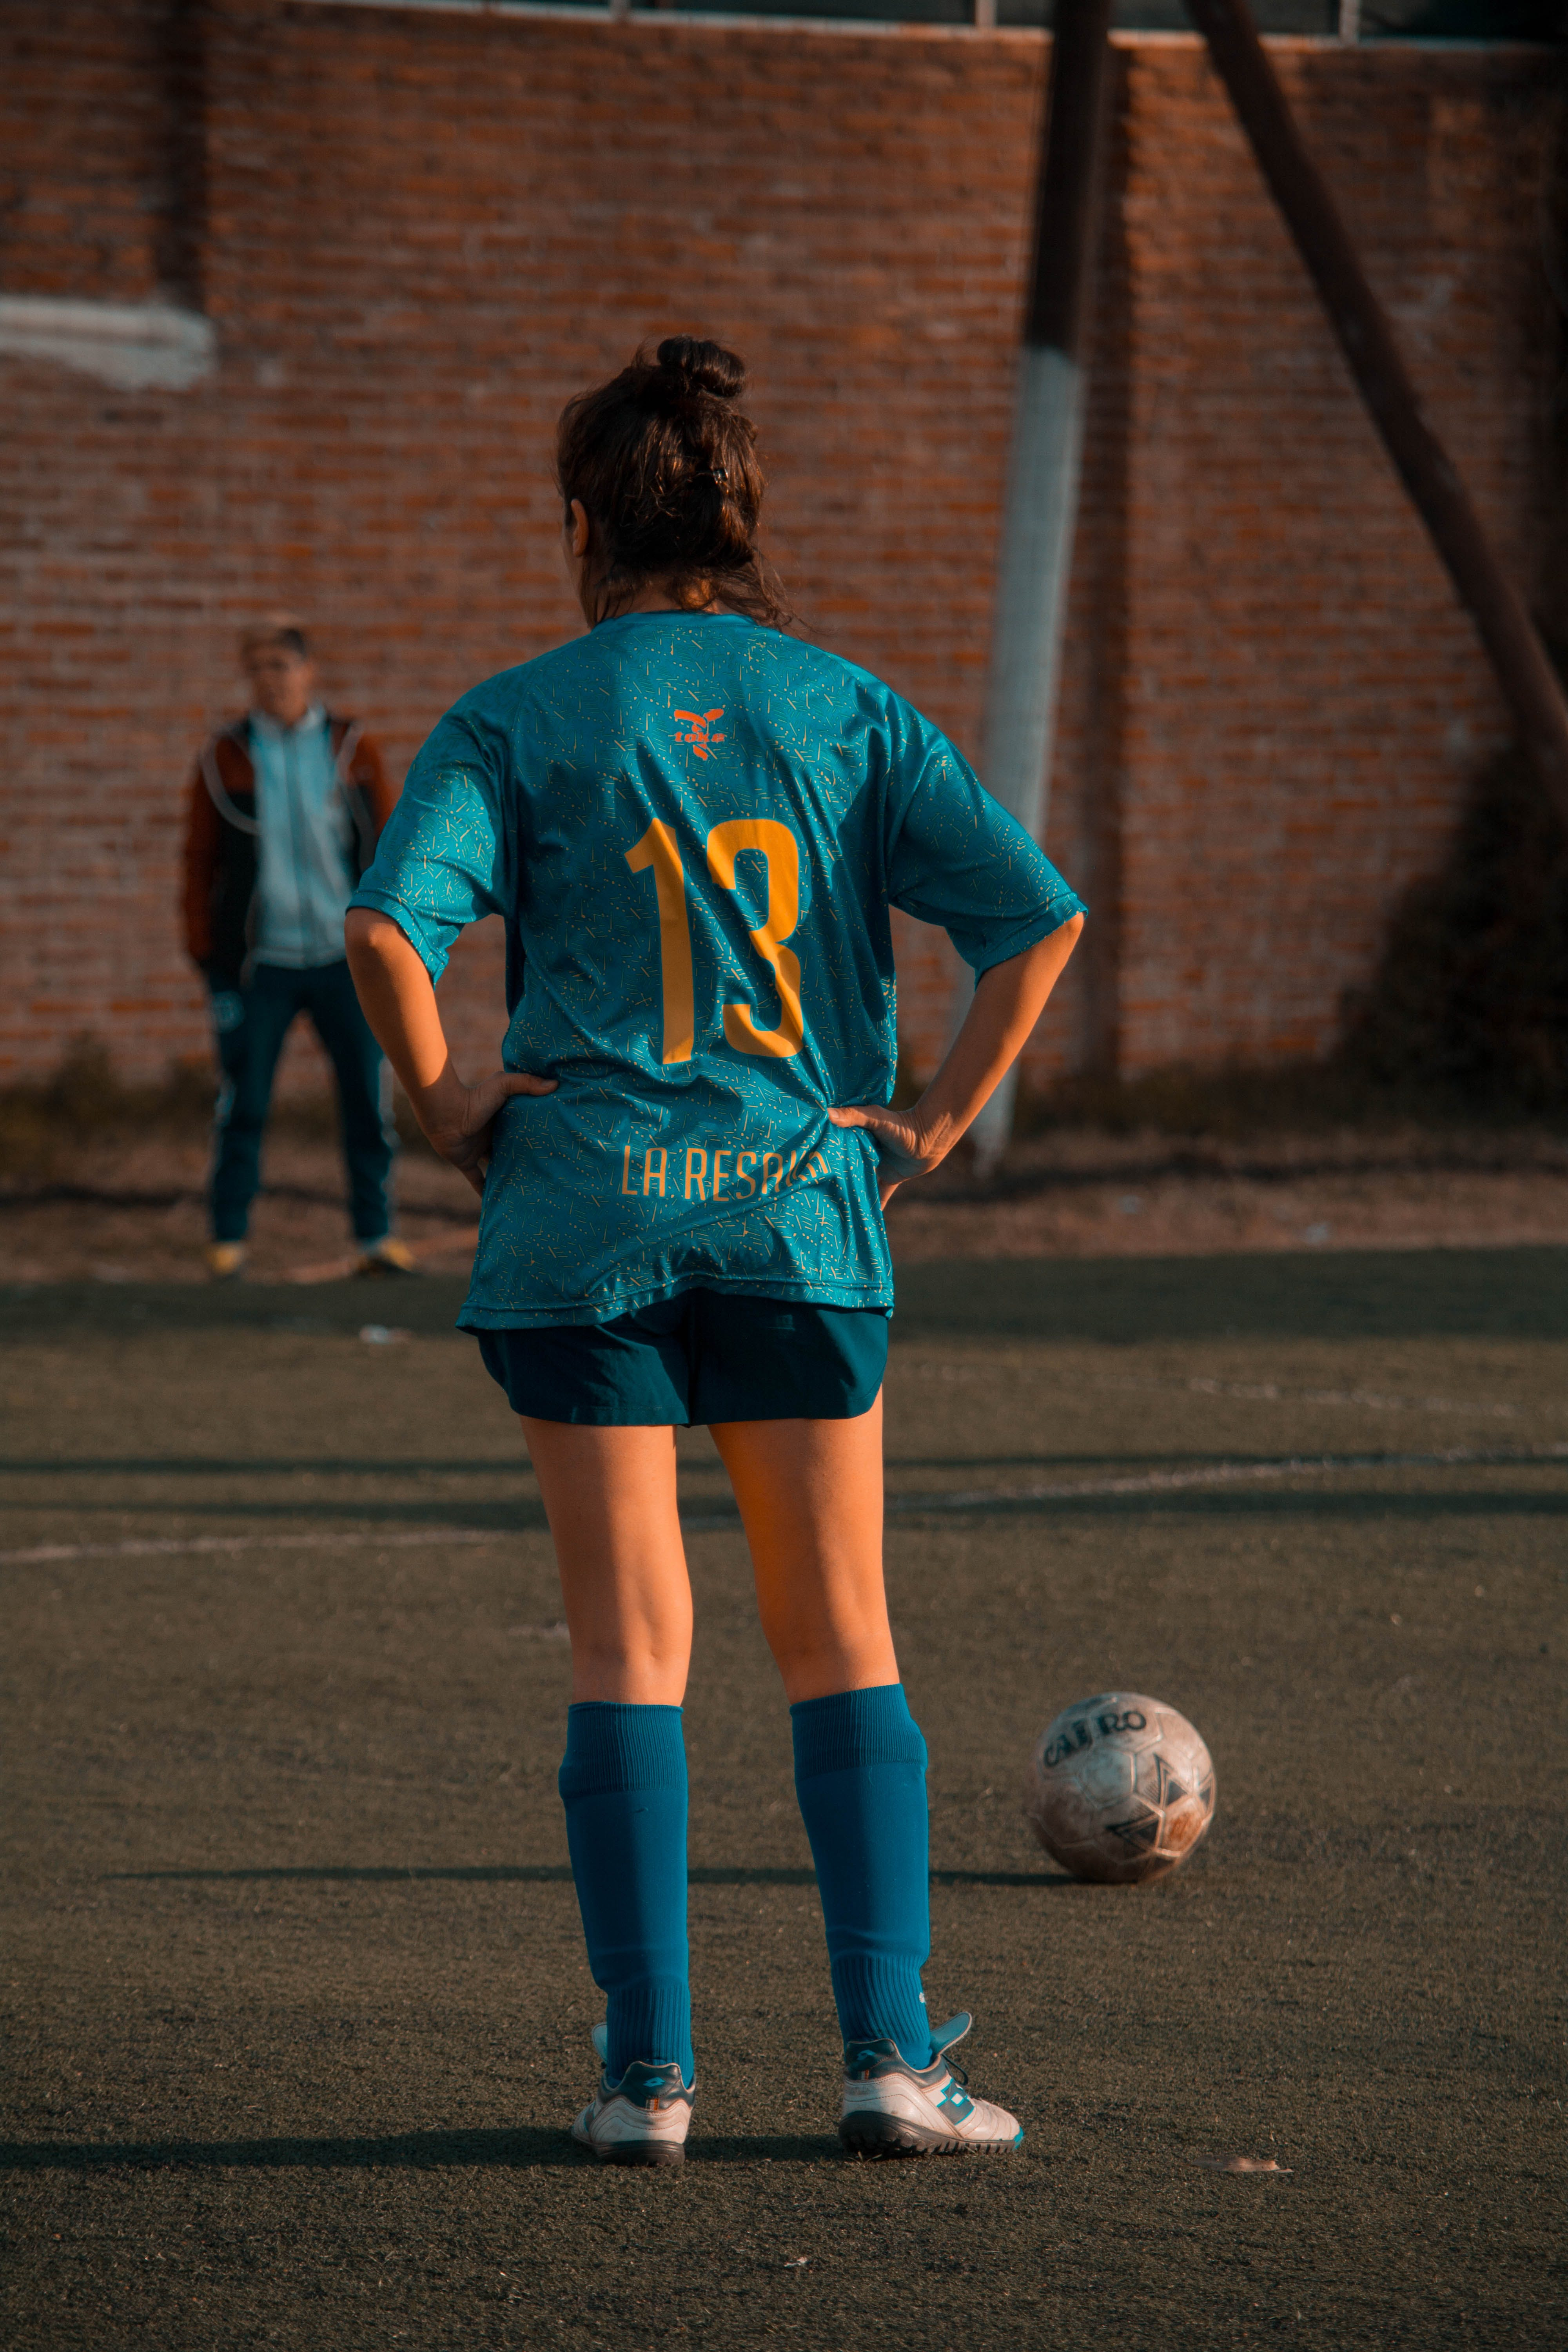 Person In Blue Soccer Jersey Standing In Front Of Ball